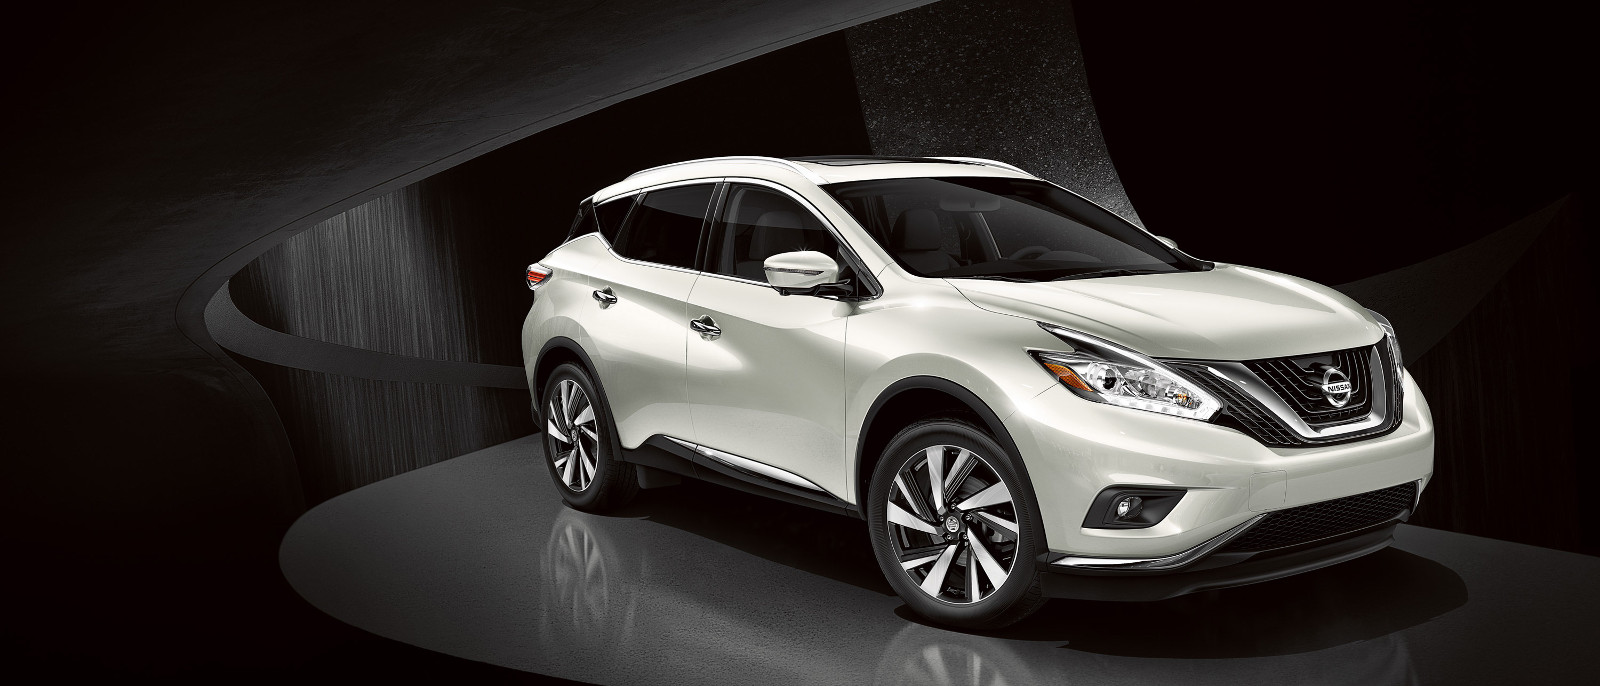 Nissan Murano Front-Side View